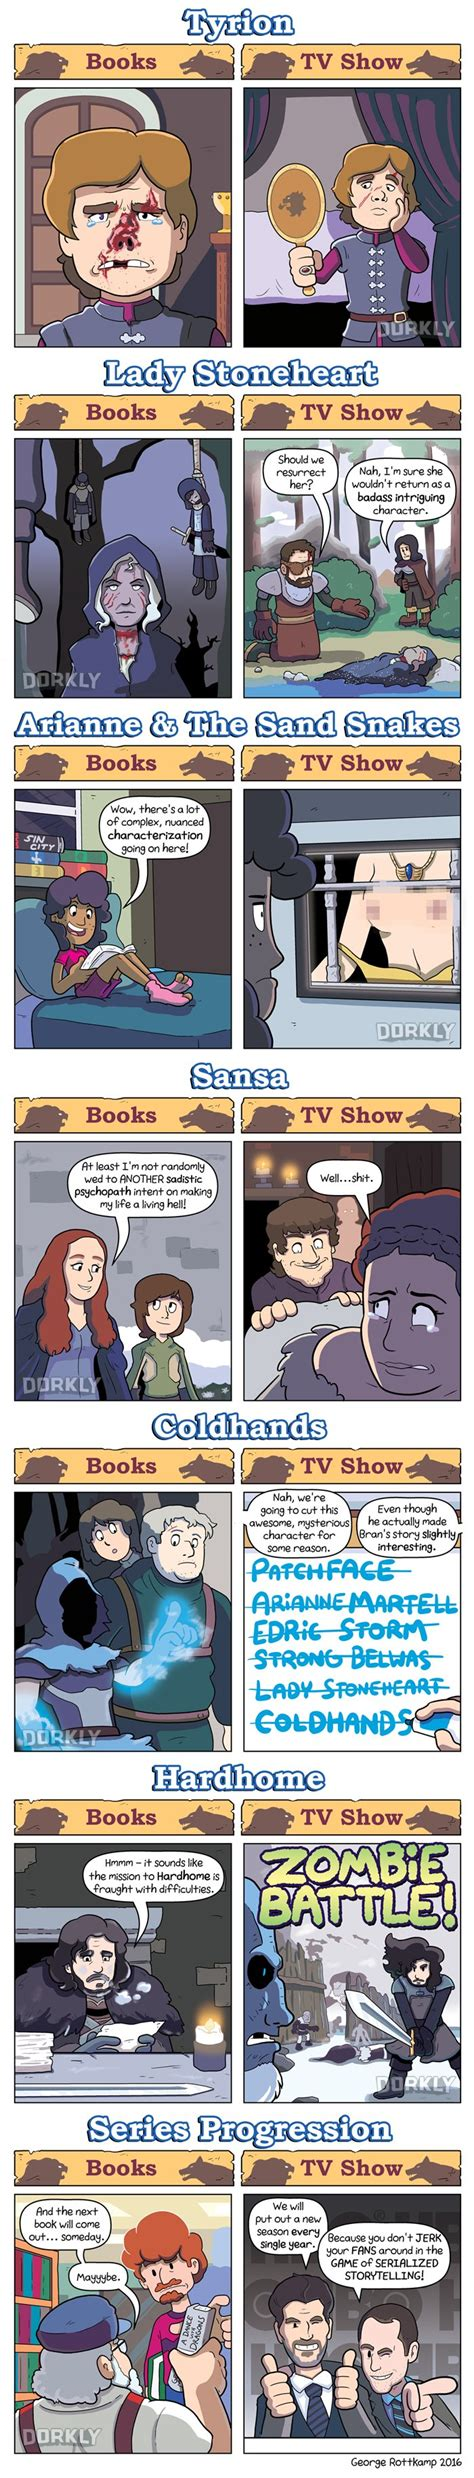 show me a picture book of thrones books vs show dorkly post